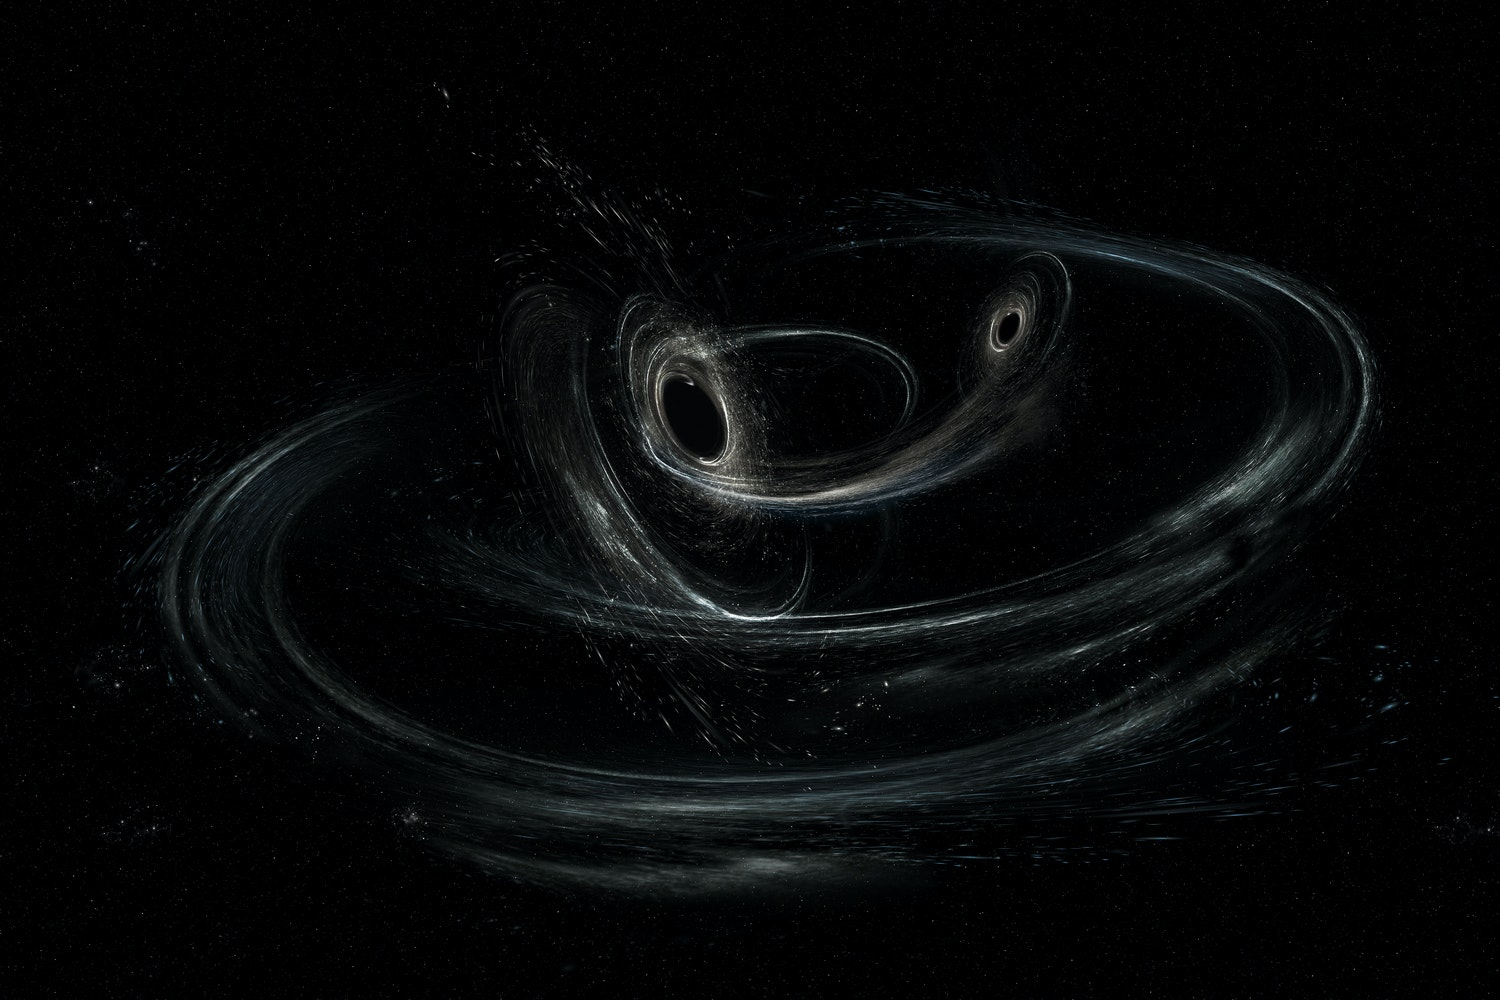 An artist's conception of two merging black holes